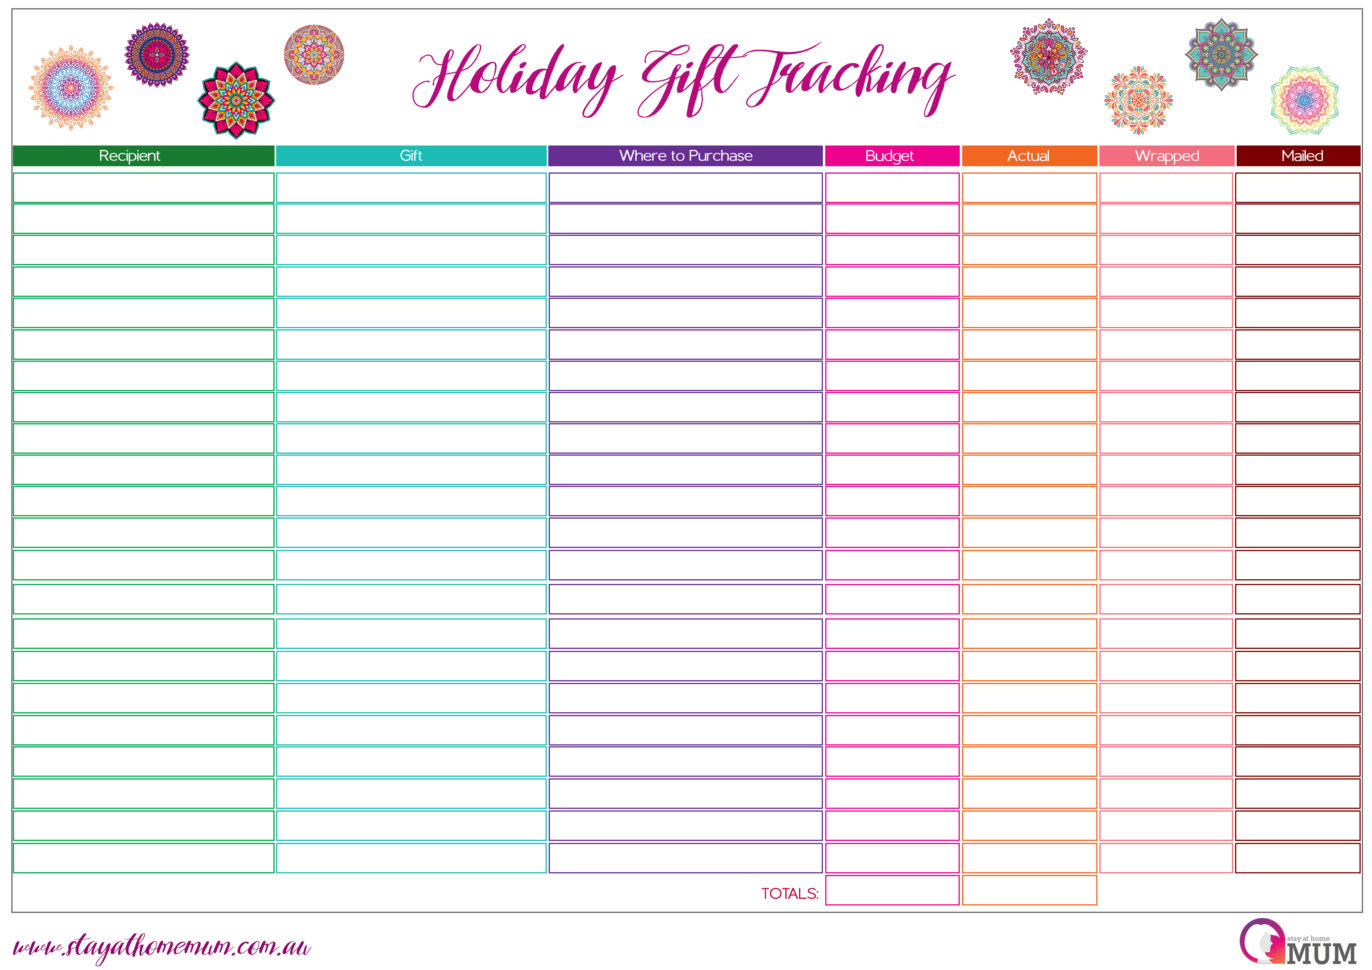 Sleep Tracking Spreadsheet With Regard To Holiday Gift Tracking Spreadsheet